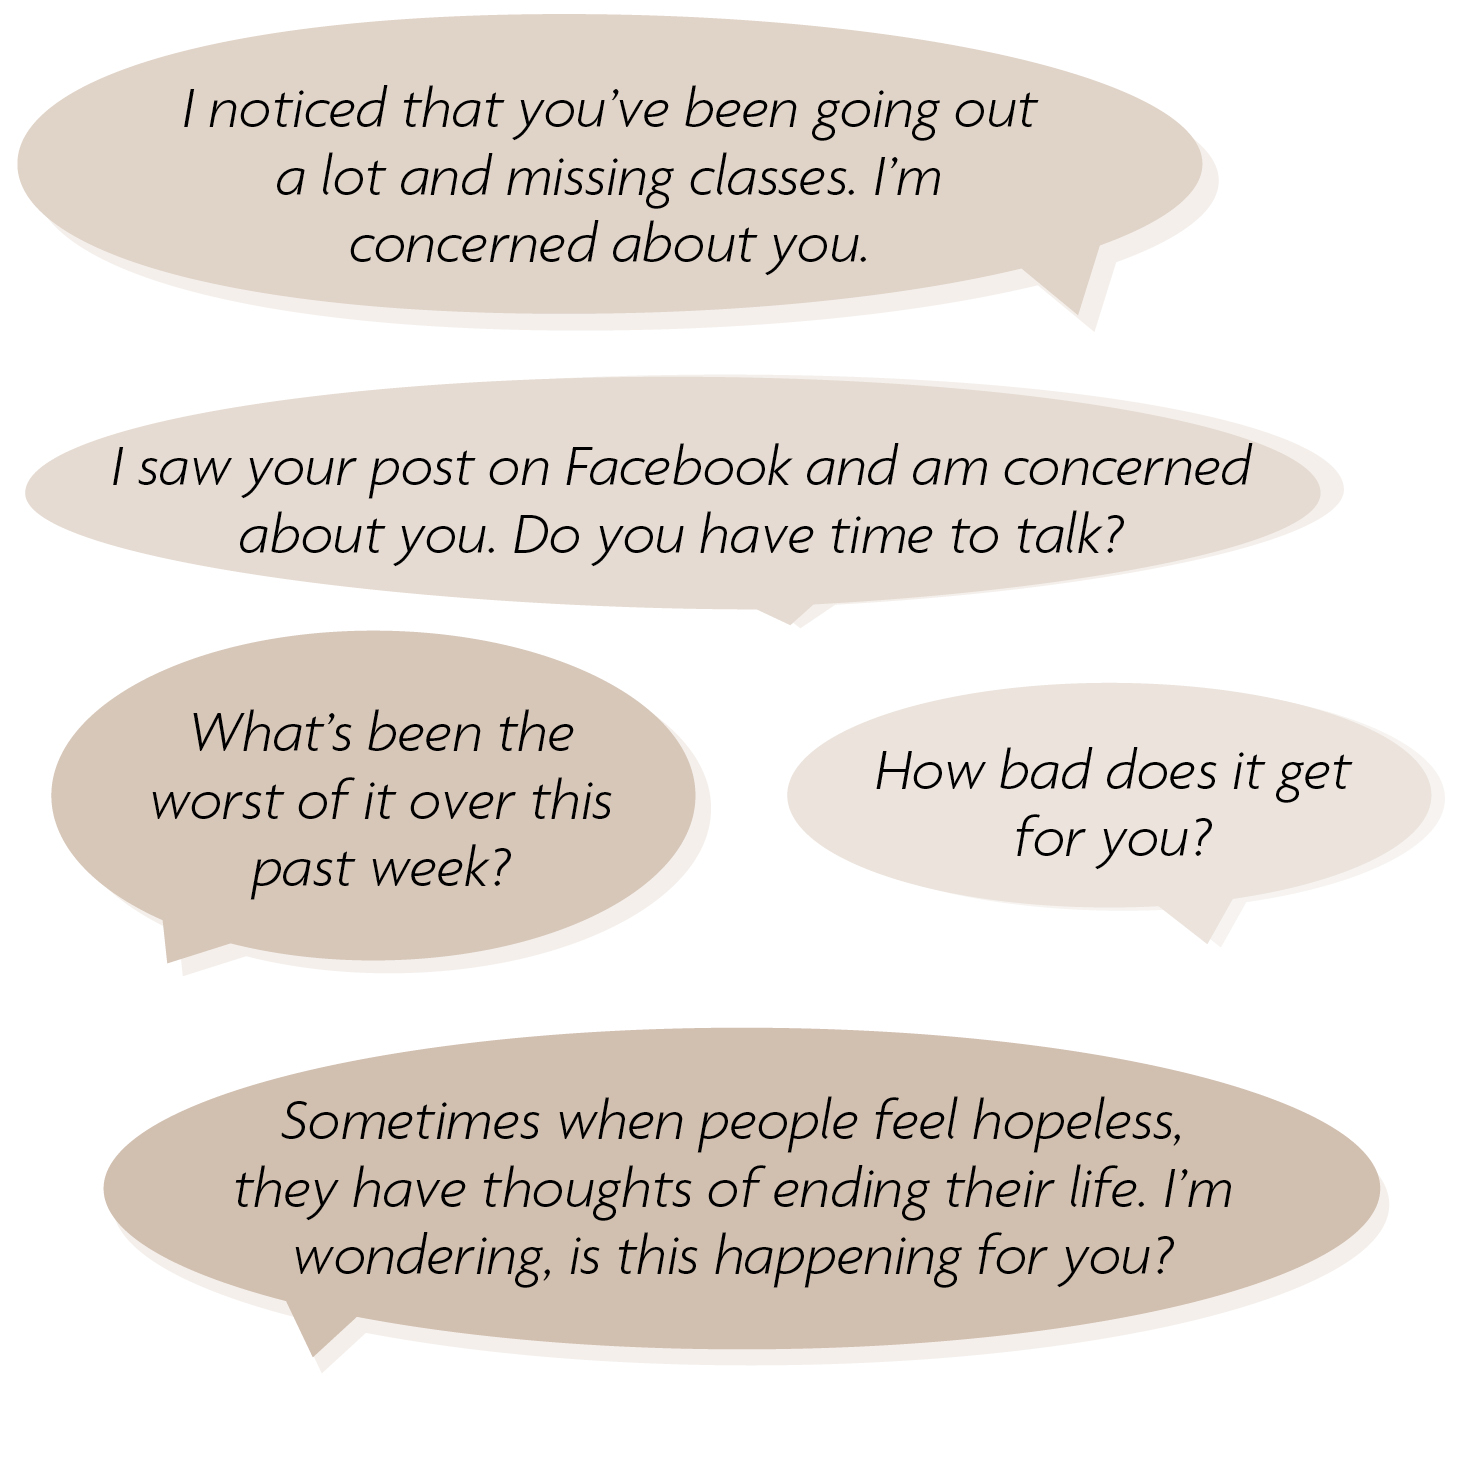 suicide prevention: what to do when a friend needs help - mount